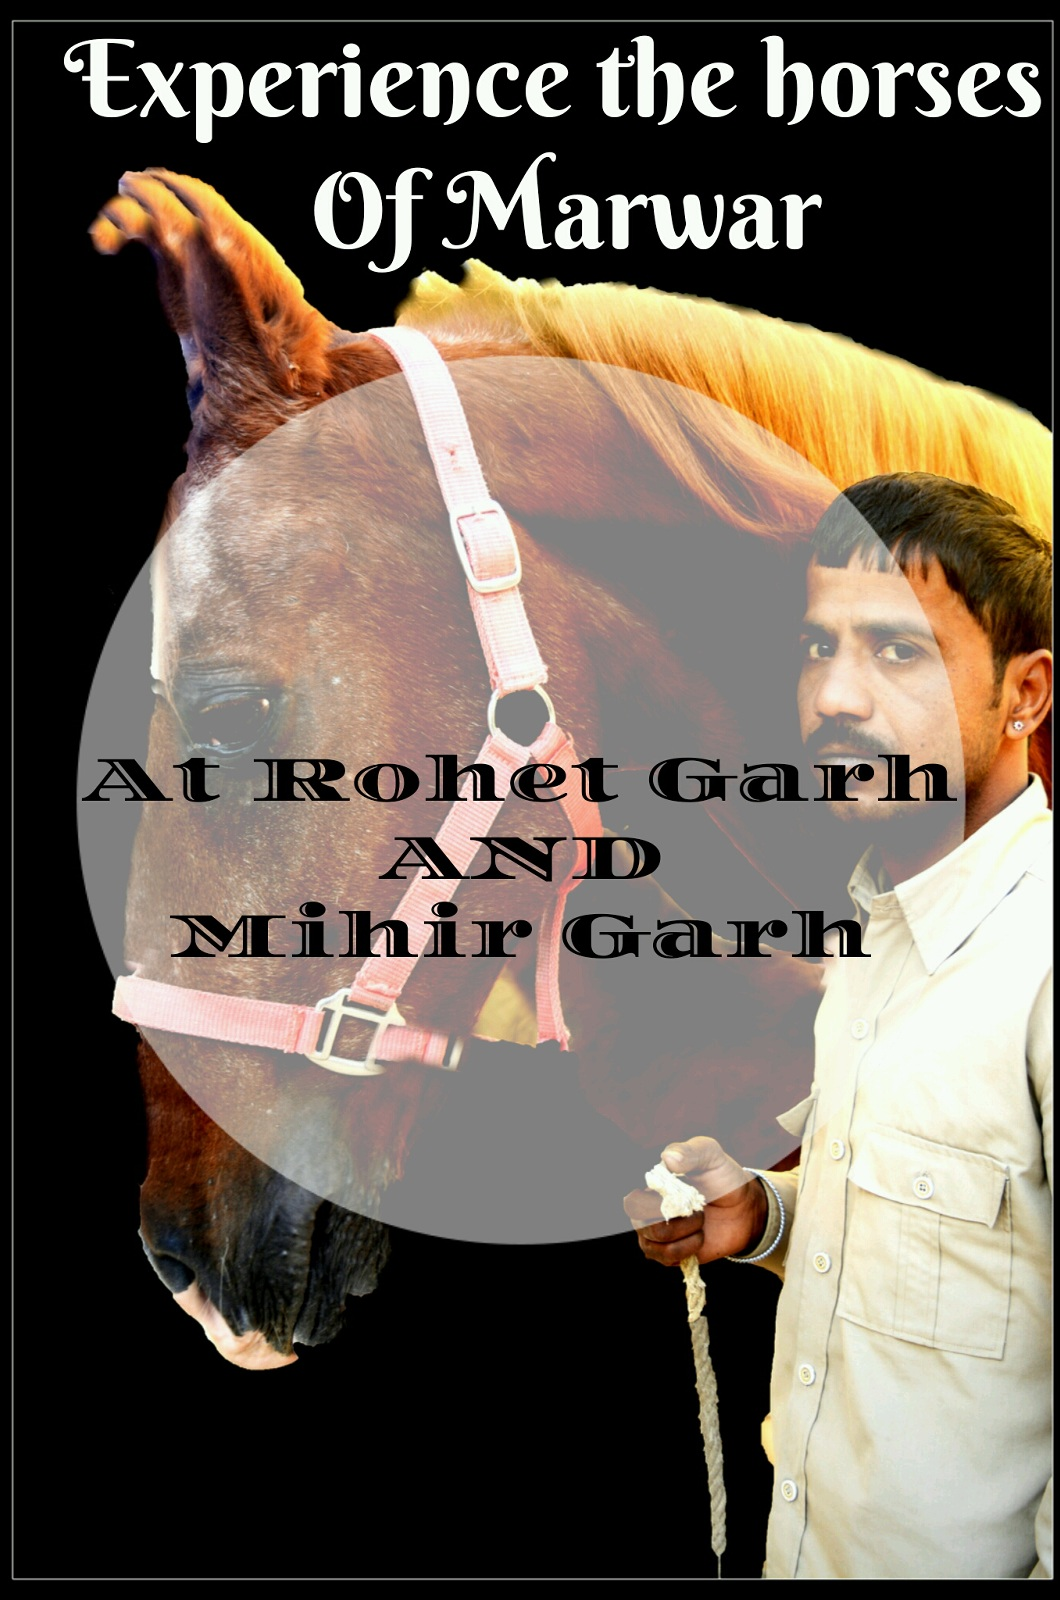 Experience the horses of Marwar at Rohet Garh and Mihir Garh